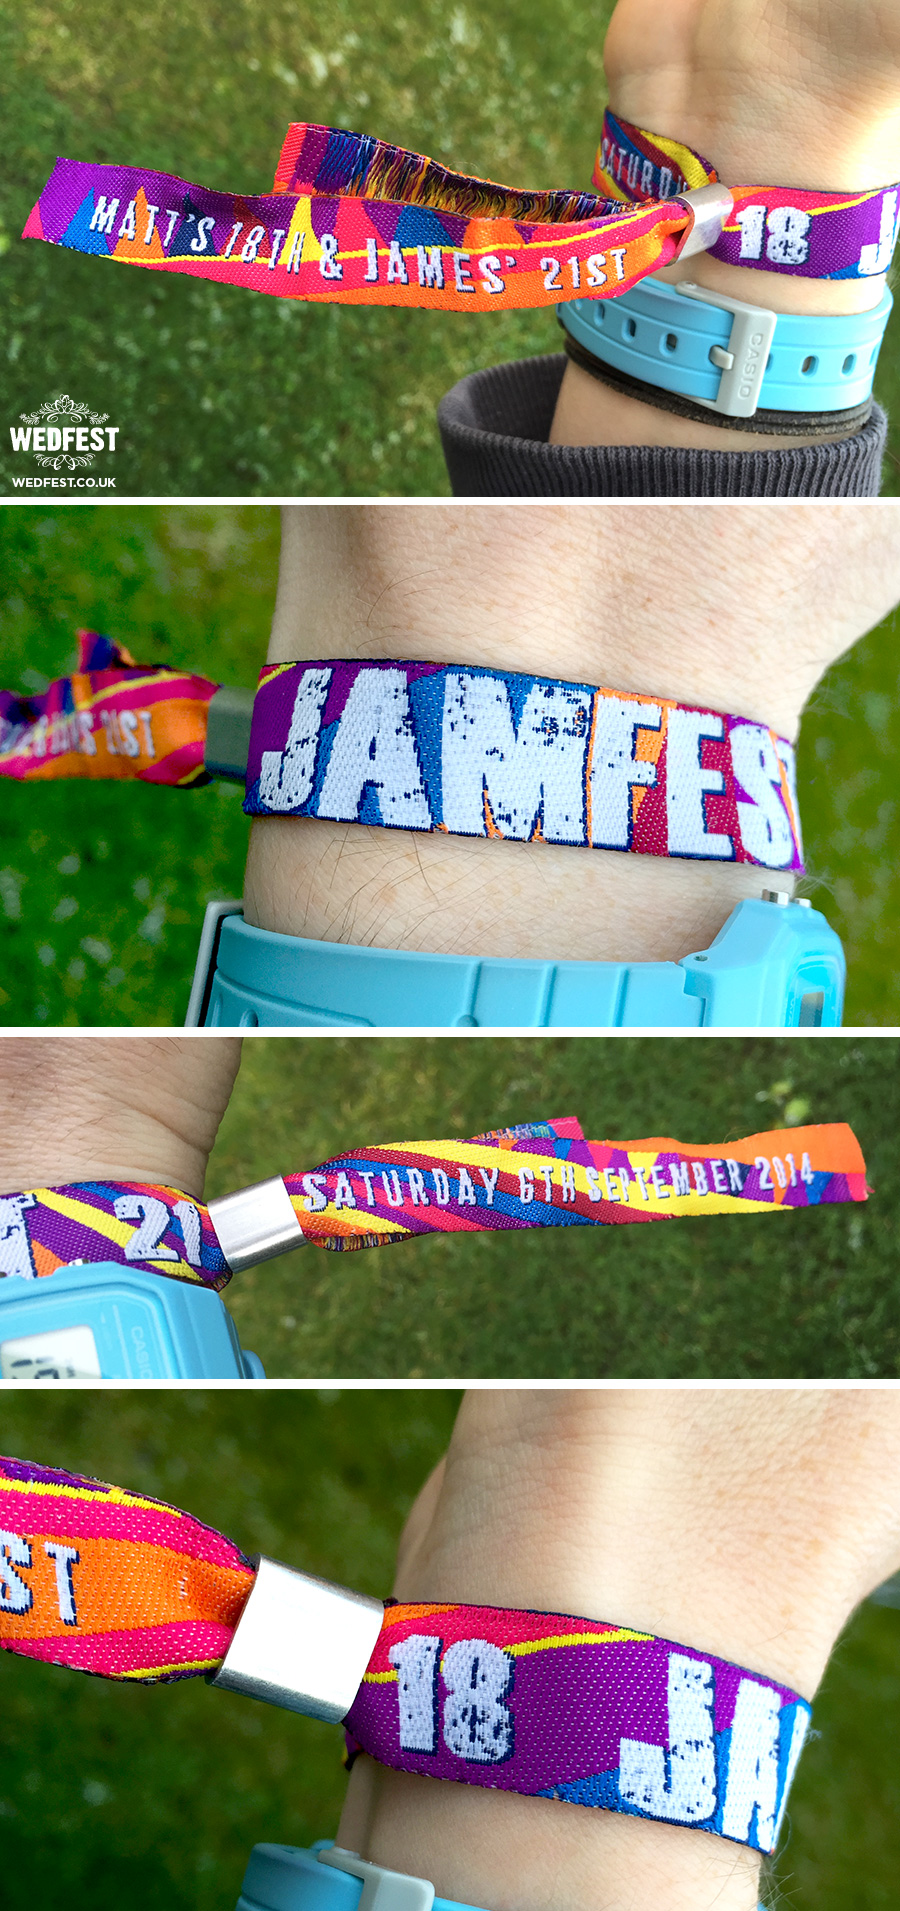 custom festival event wristbands for a birthday party